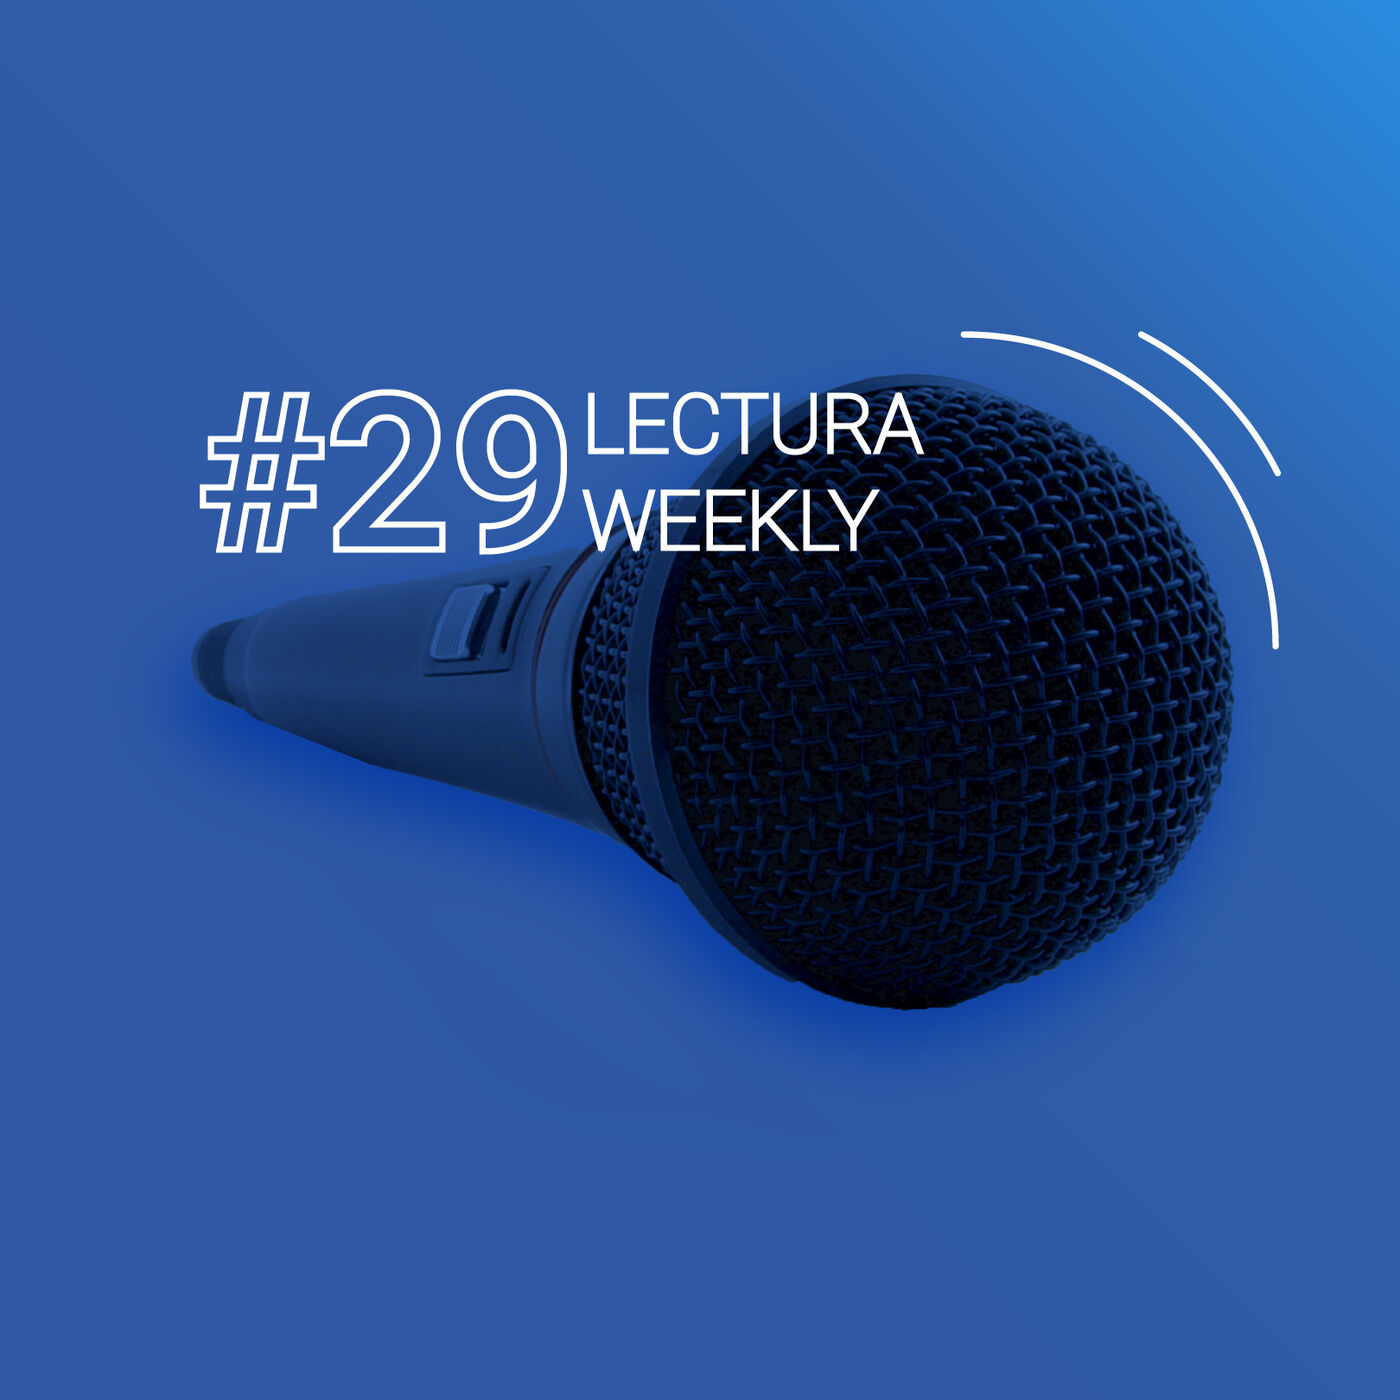 Lectura Weekly Podcasts: Week 29